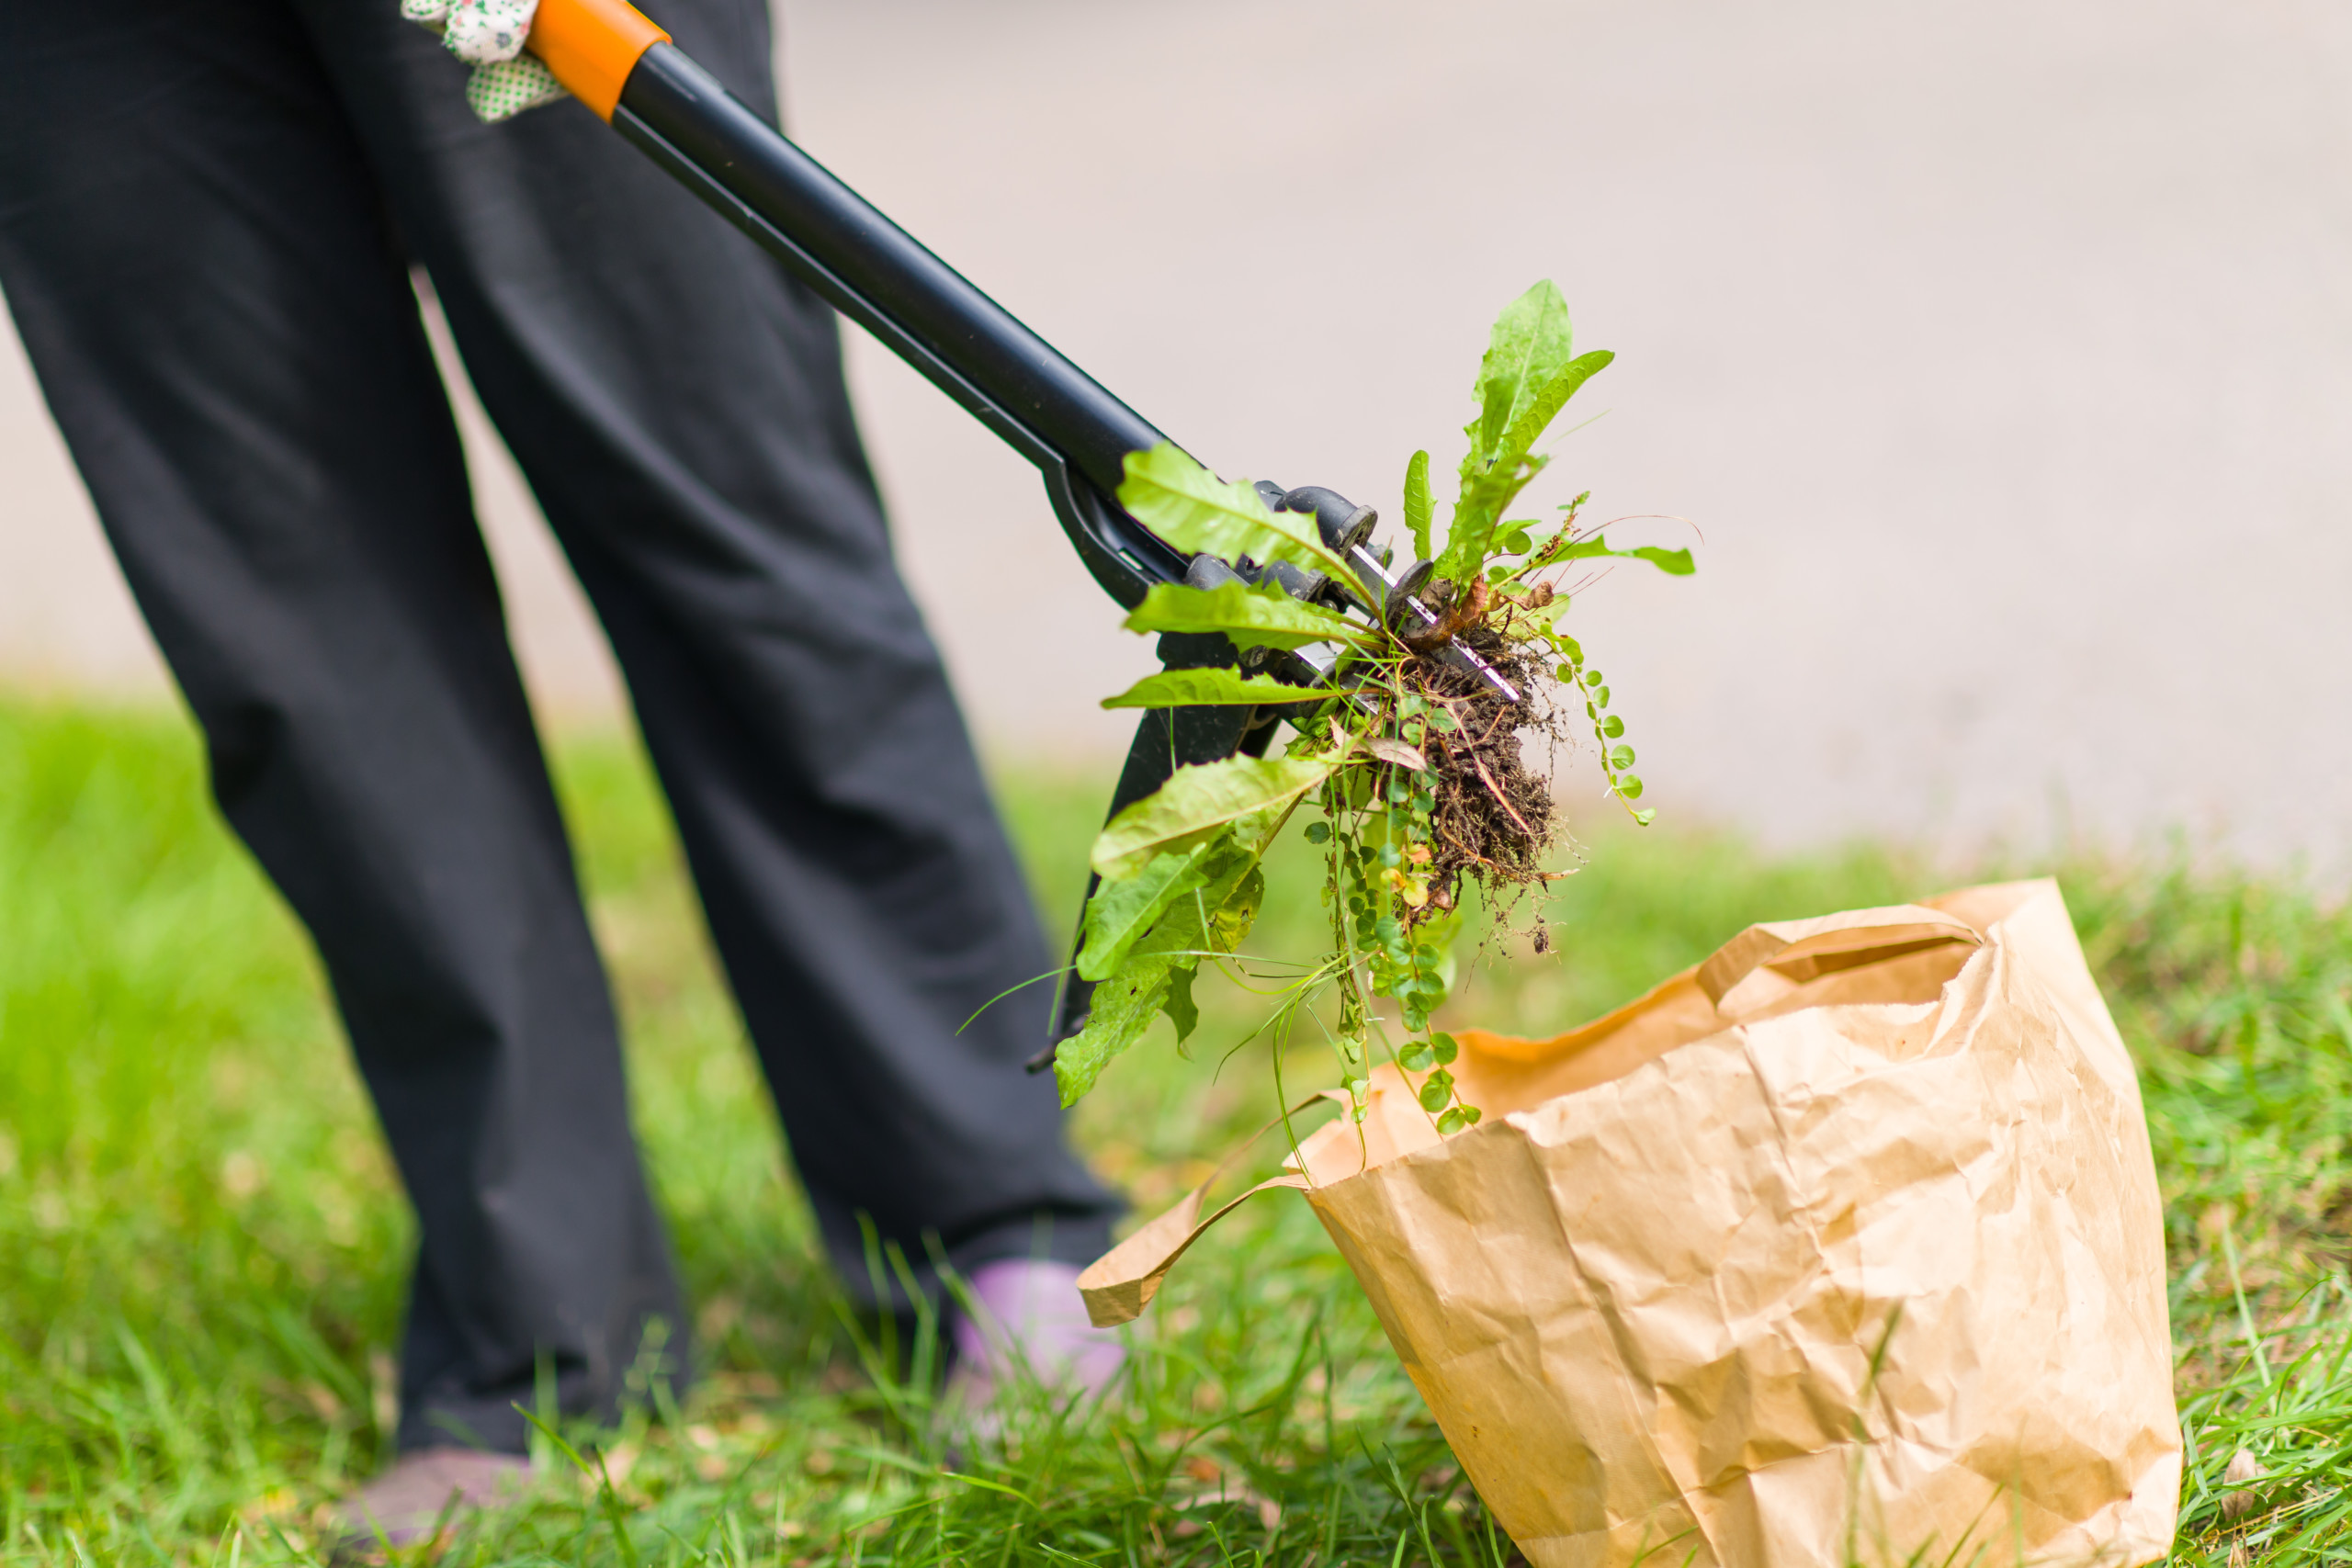 Weed vs. Lawn—The Green Way to Win